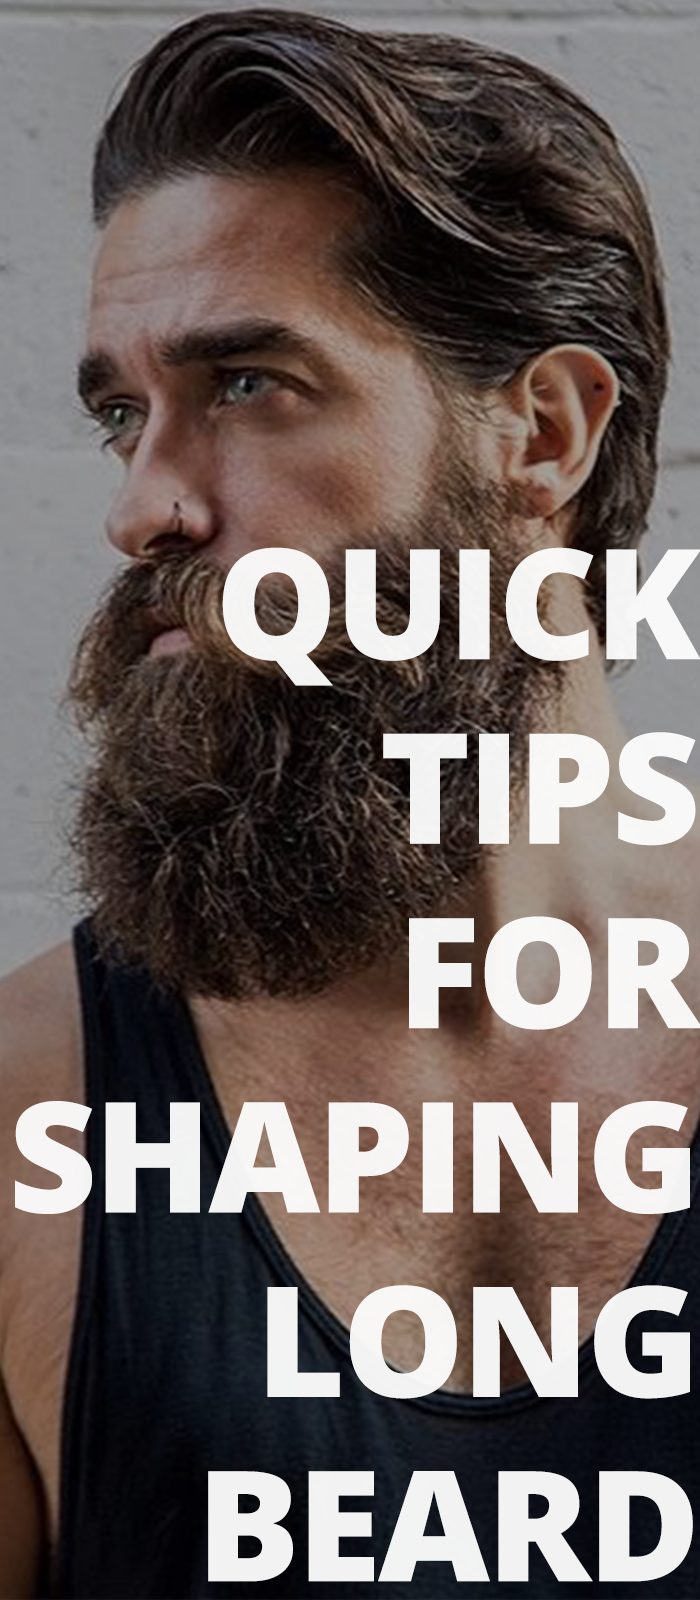 Quick Tips For Shaping Long Beard